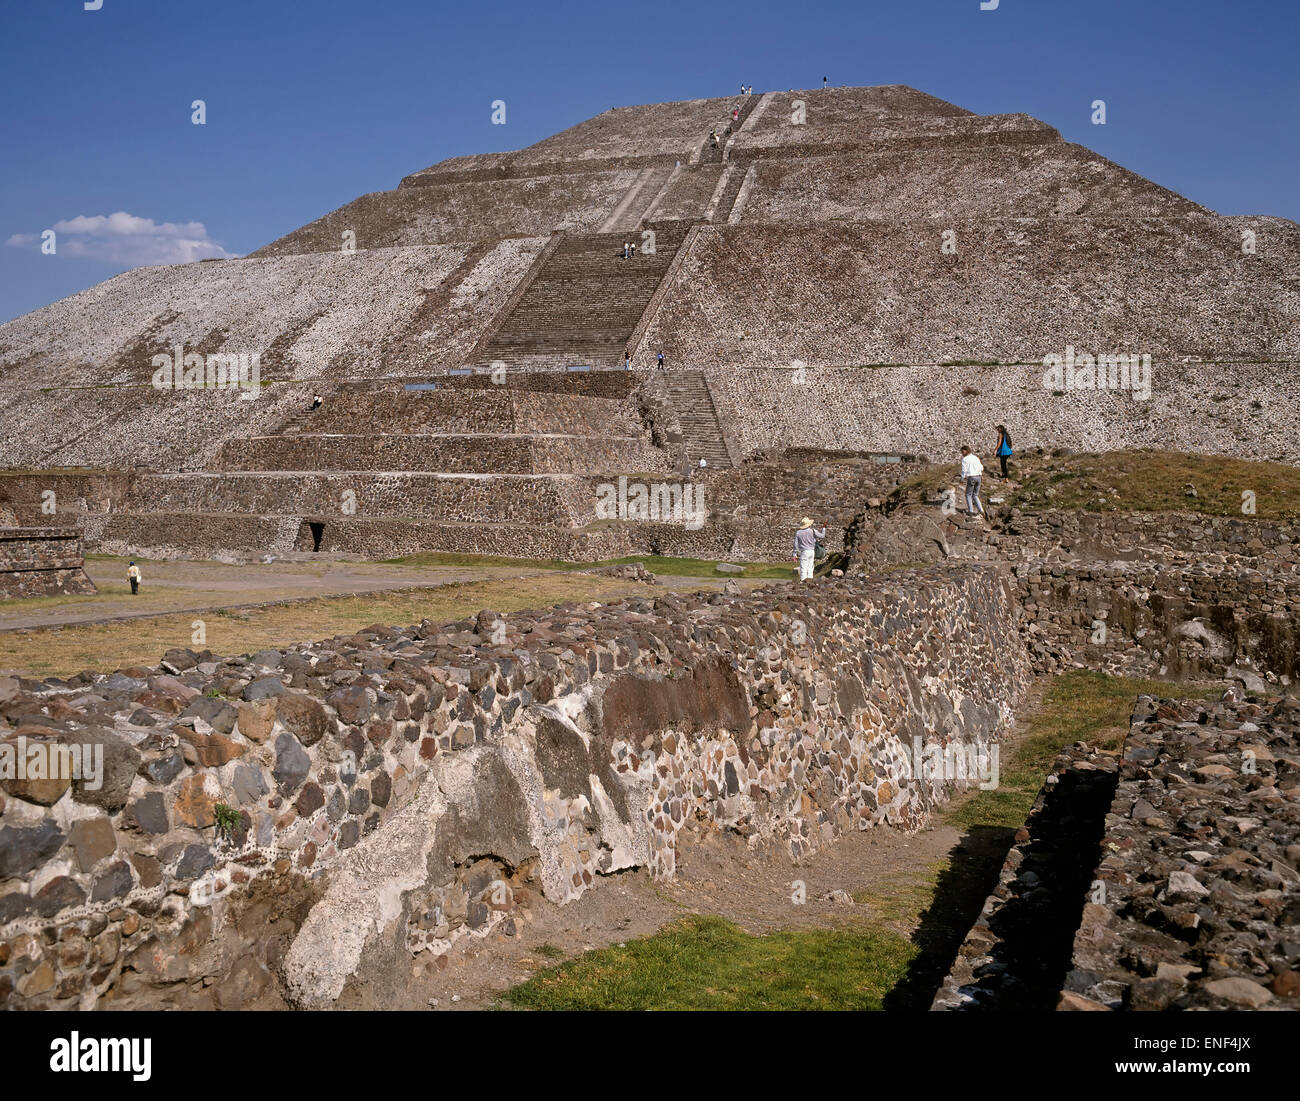 Teotihuacan, Mexico.  Pyramid of the Sun.  Pre-Hispanic City of Teotihuacan is a UNESCO World Heritage Site. - Stock Image